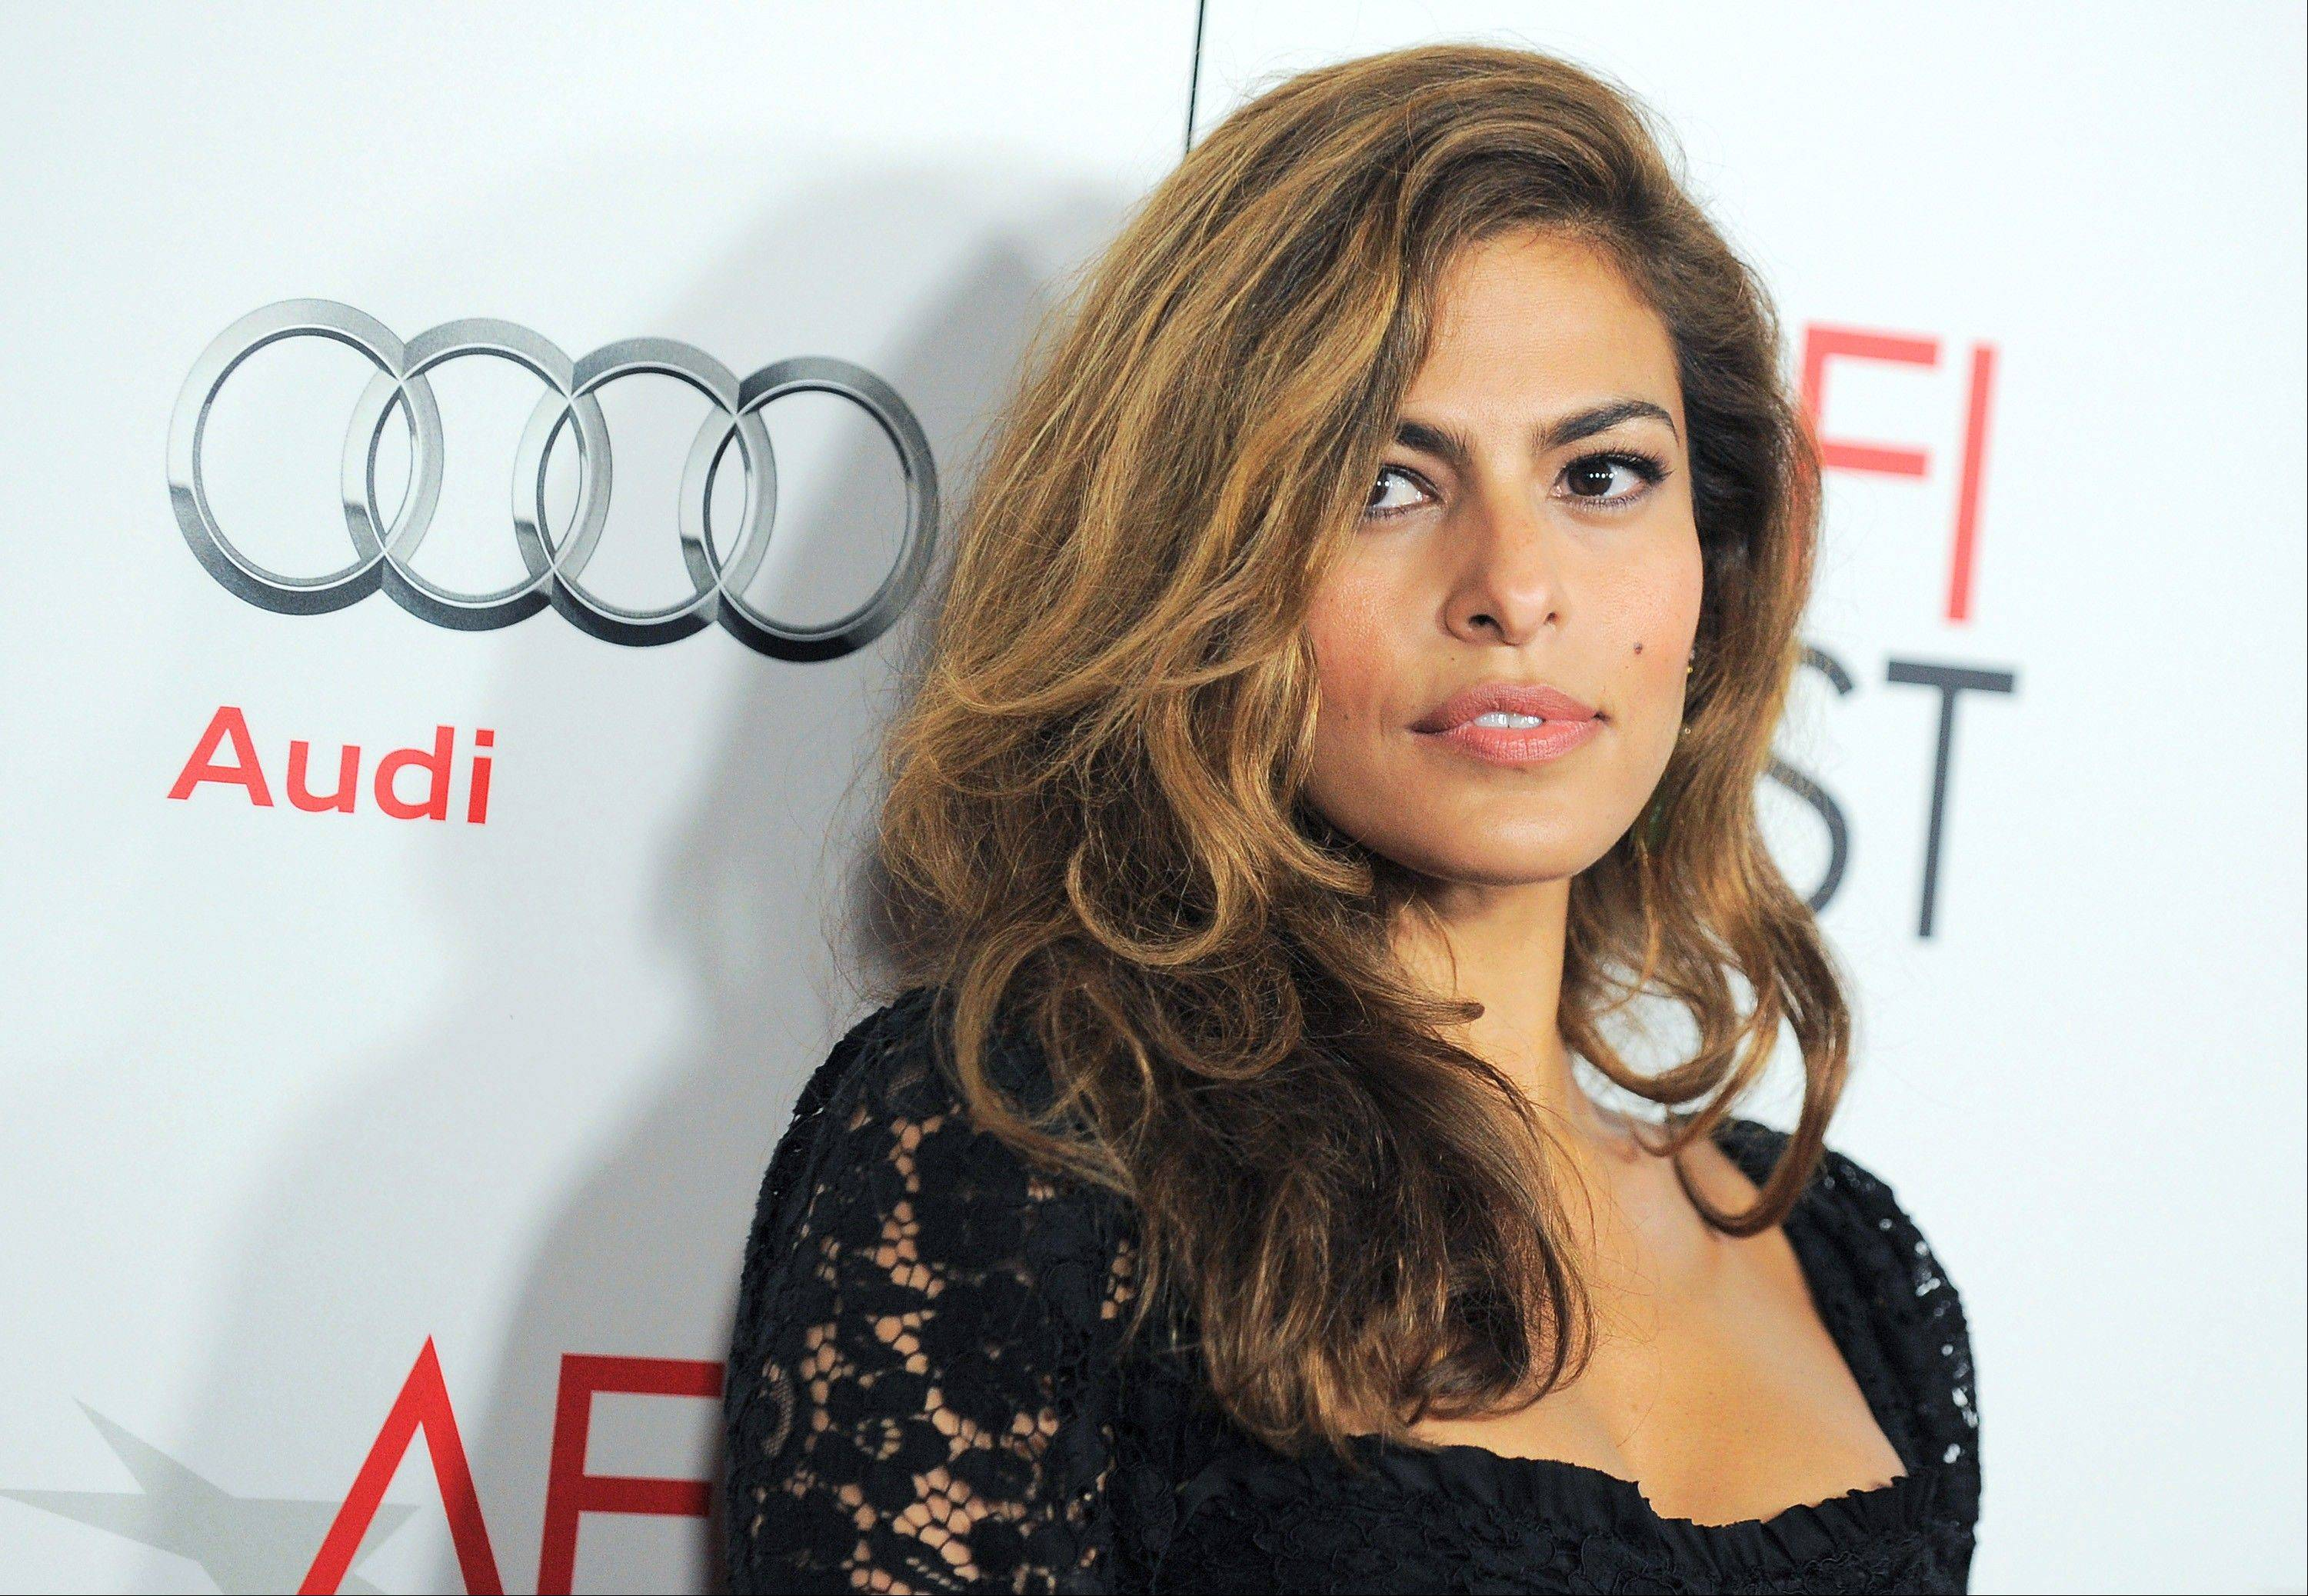 Actress Eva Mendes is working on her own clothing line for New York & Company and is hoping to have it in stores for the fall.